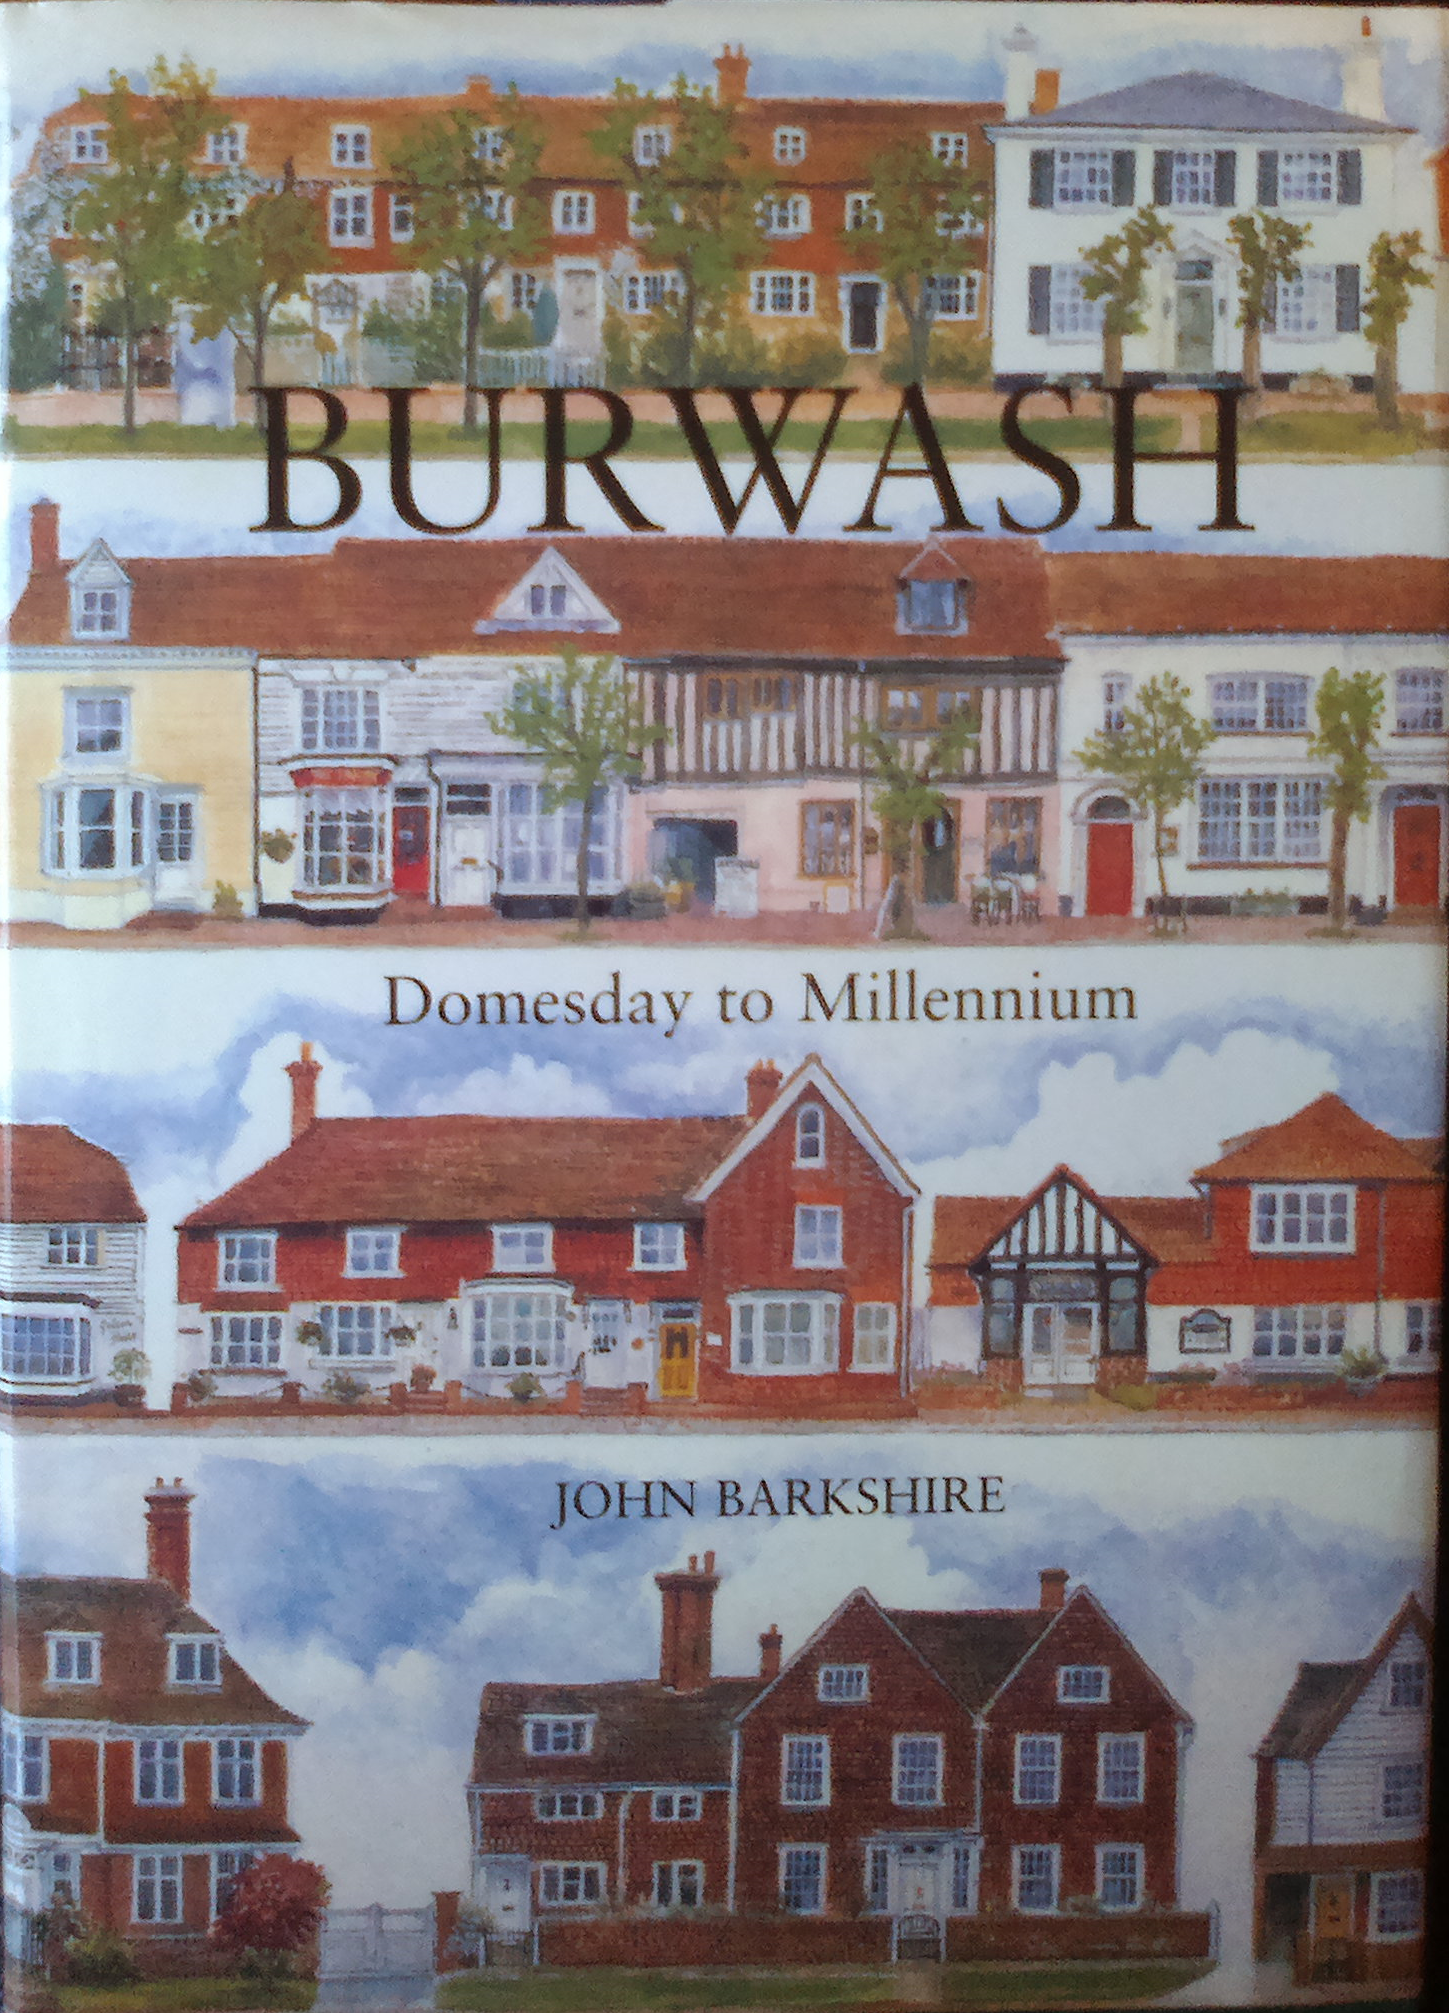 Burwash - Domesday to Millenium